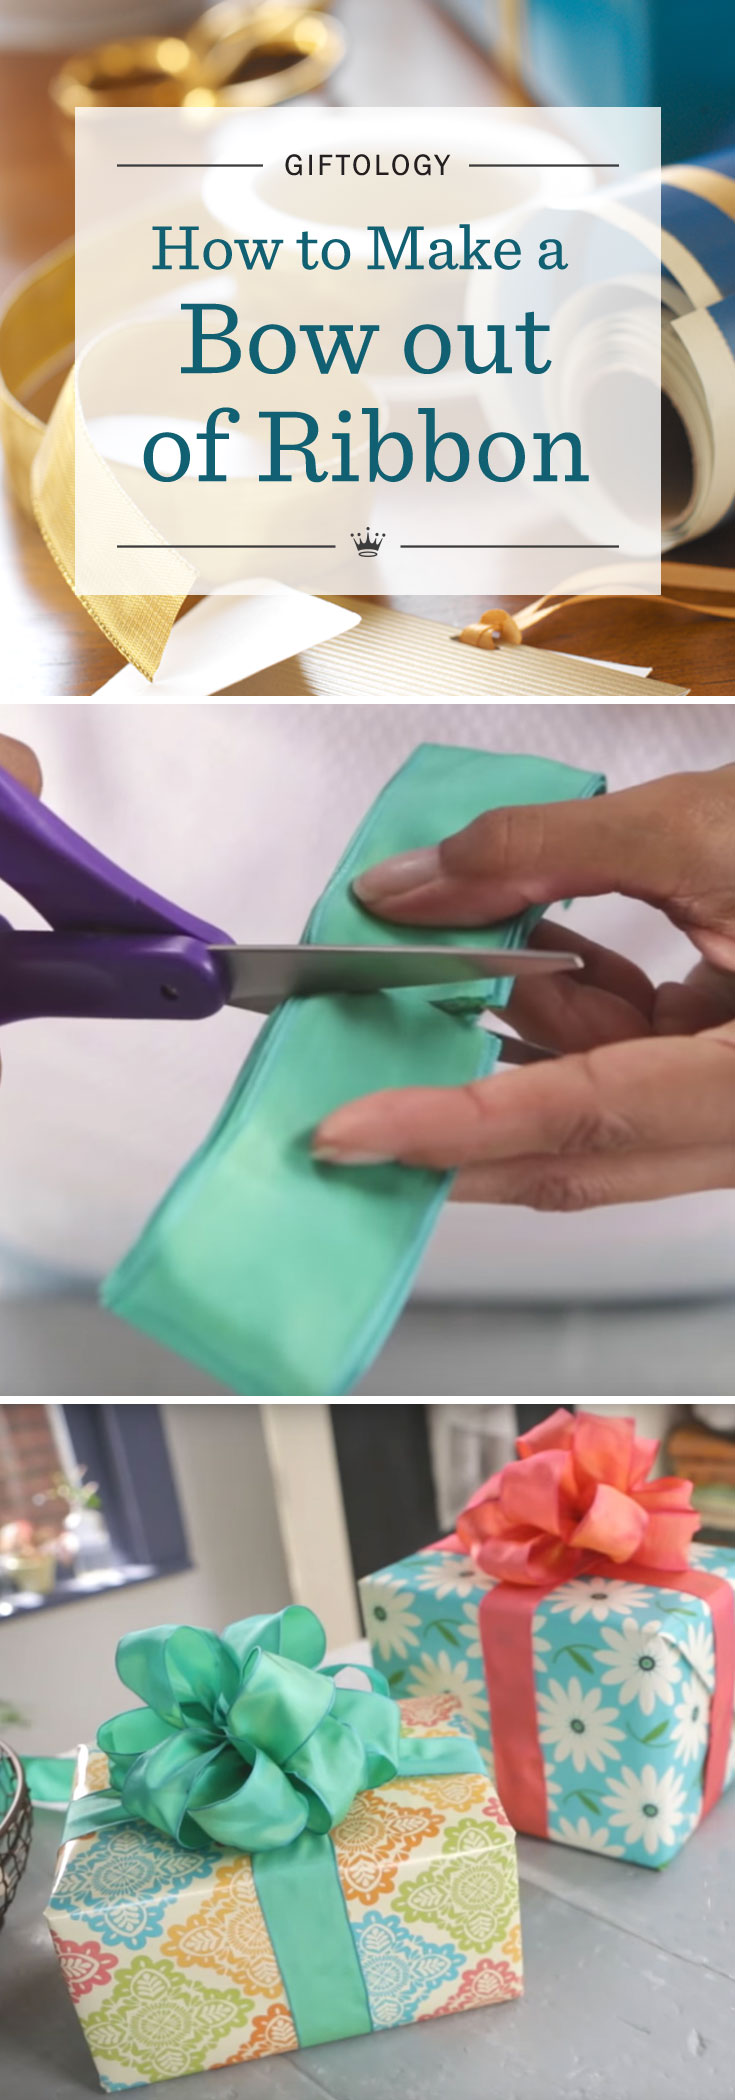 Giftology Video: How to Make a Bow out of Ribbon | Hallmark Ideas ...